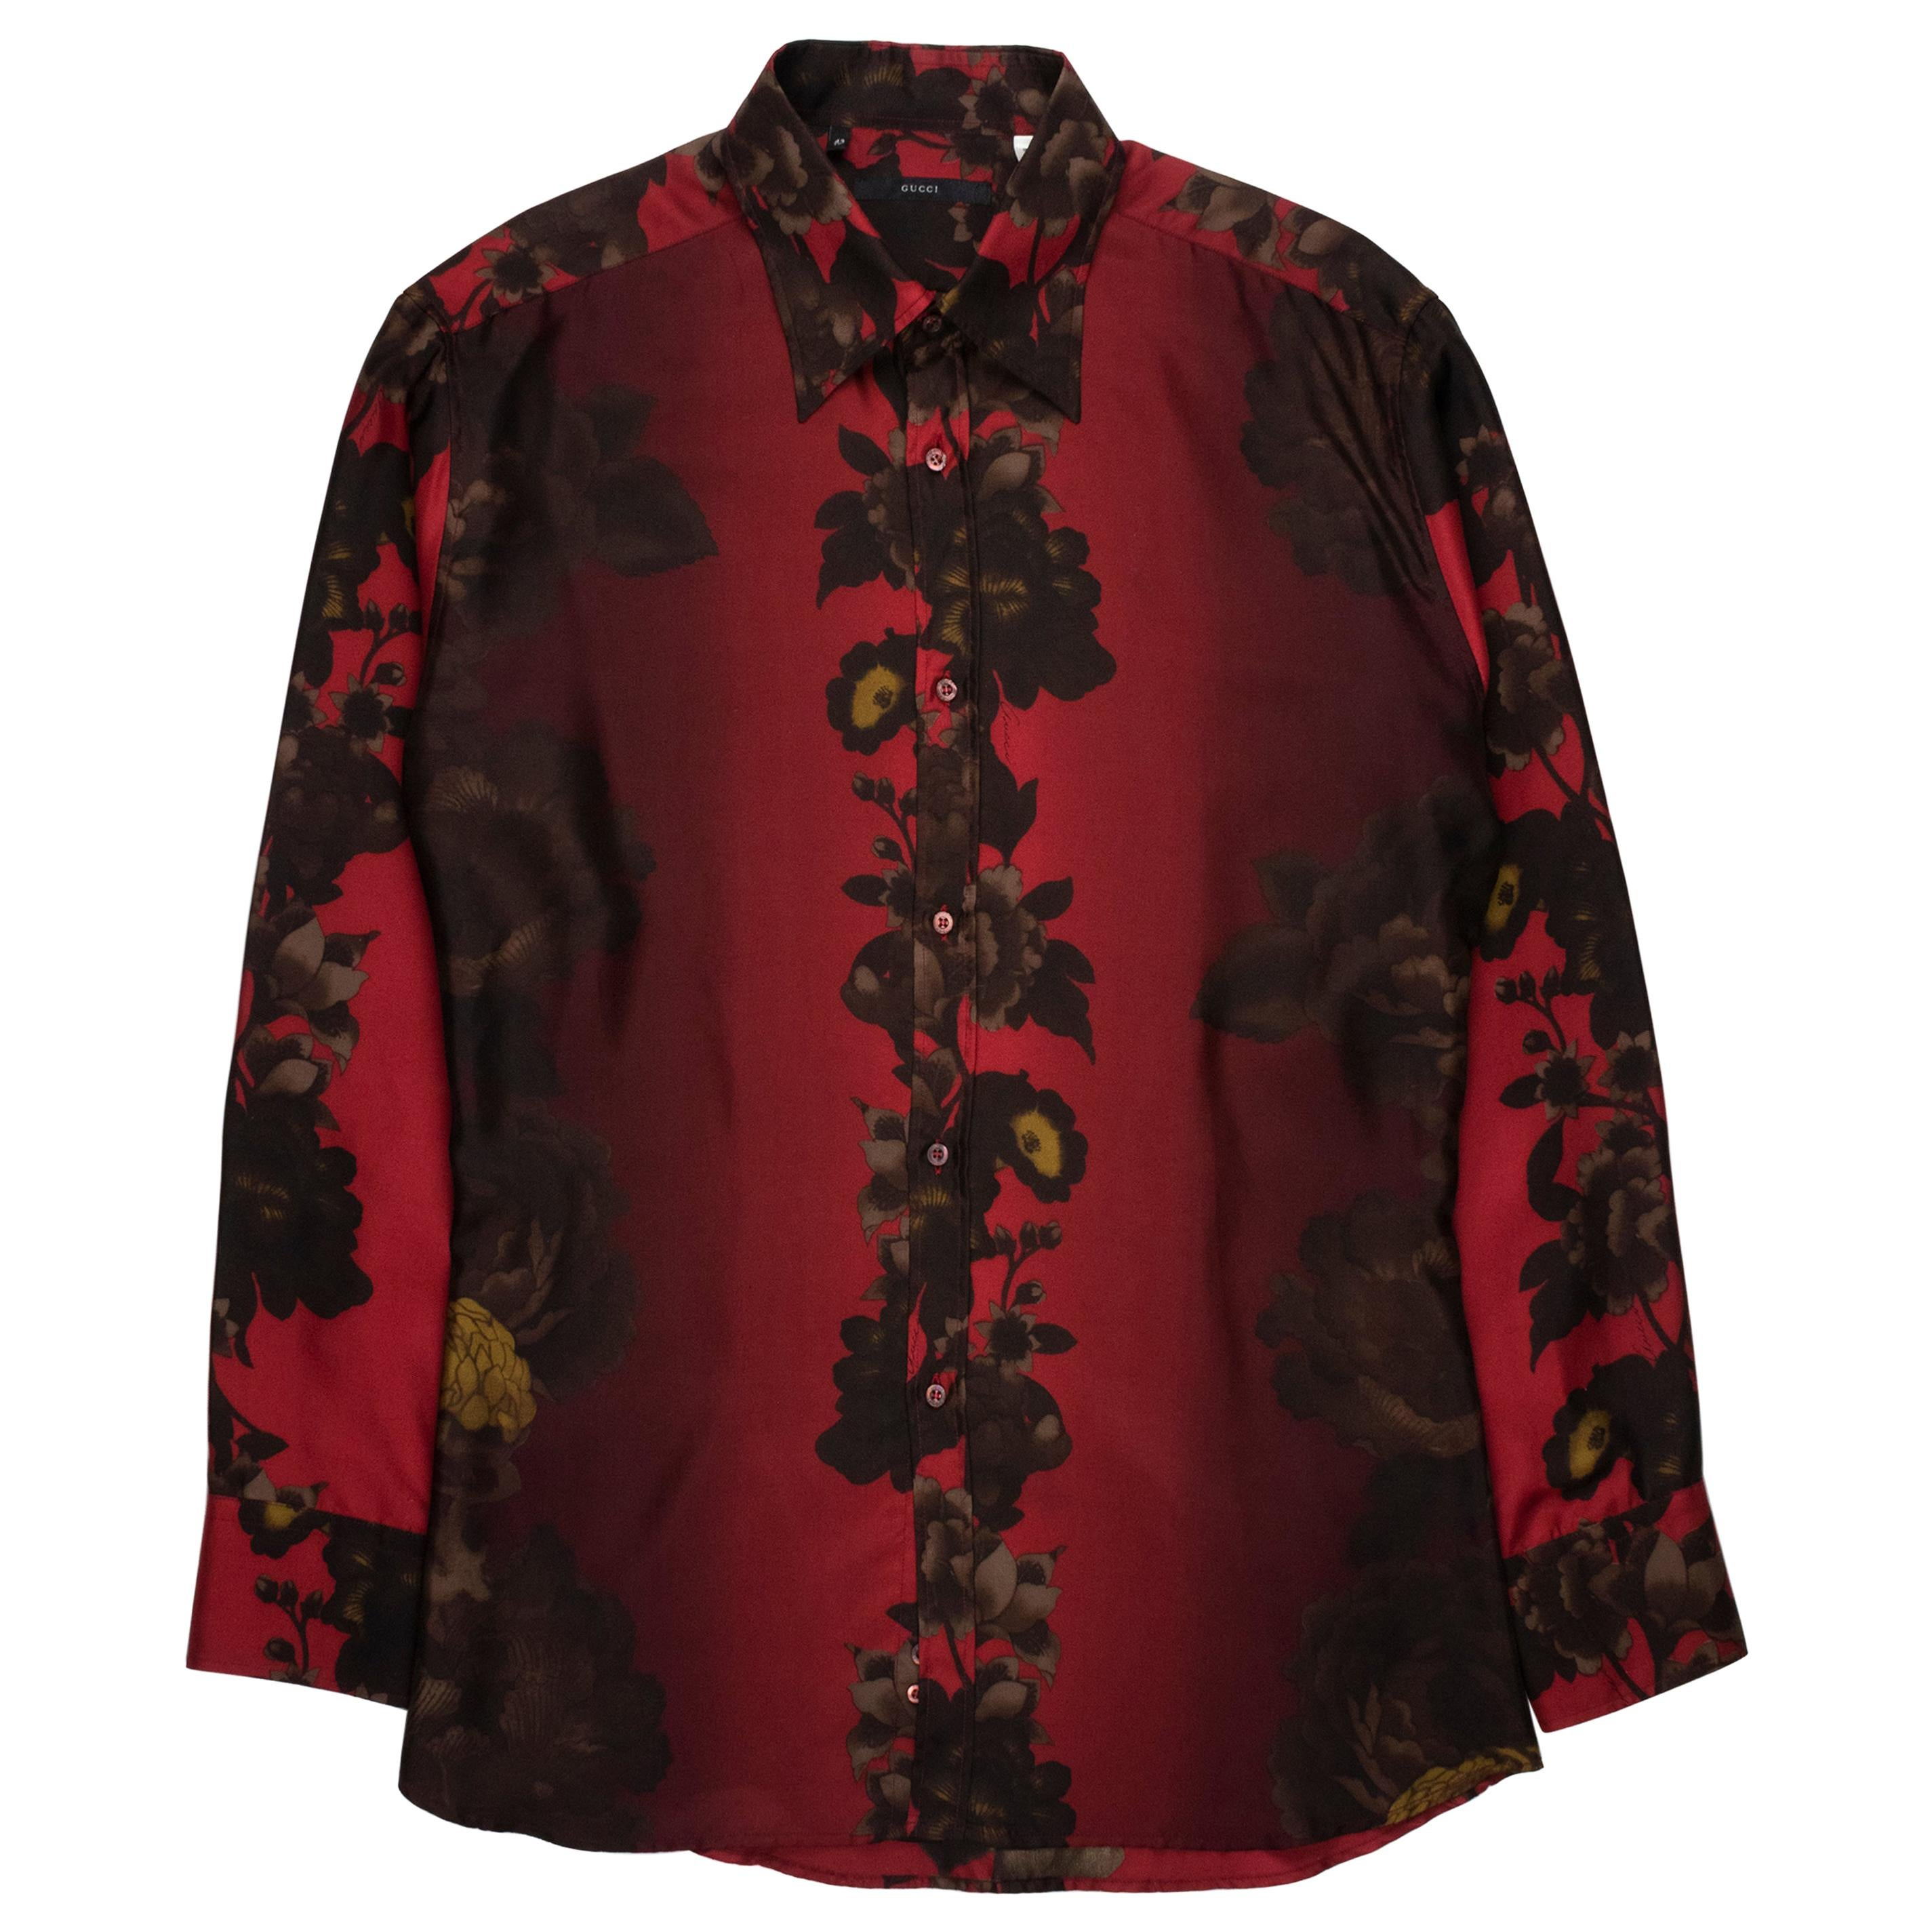 Gucci by Tom Ford SS2001 Silk Floral Shirt